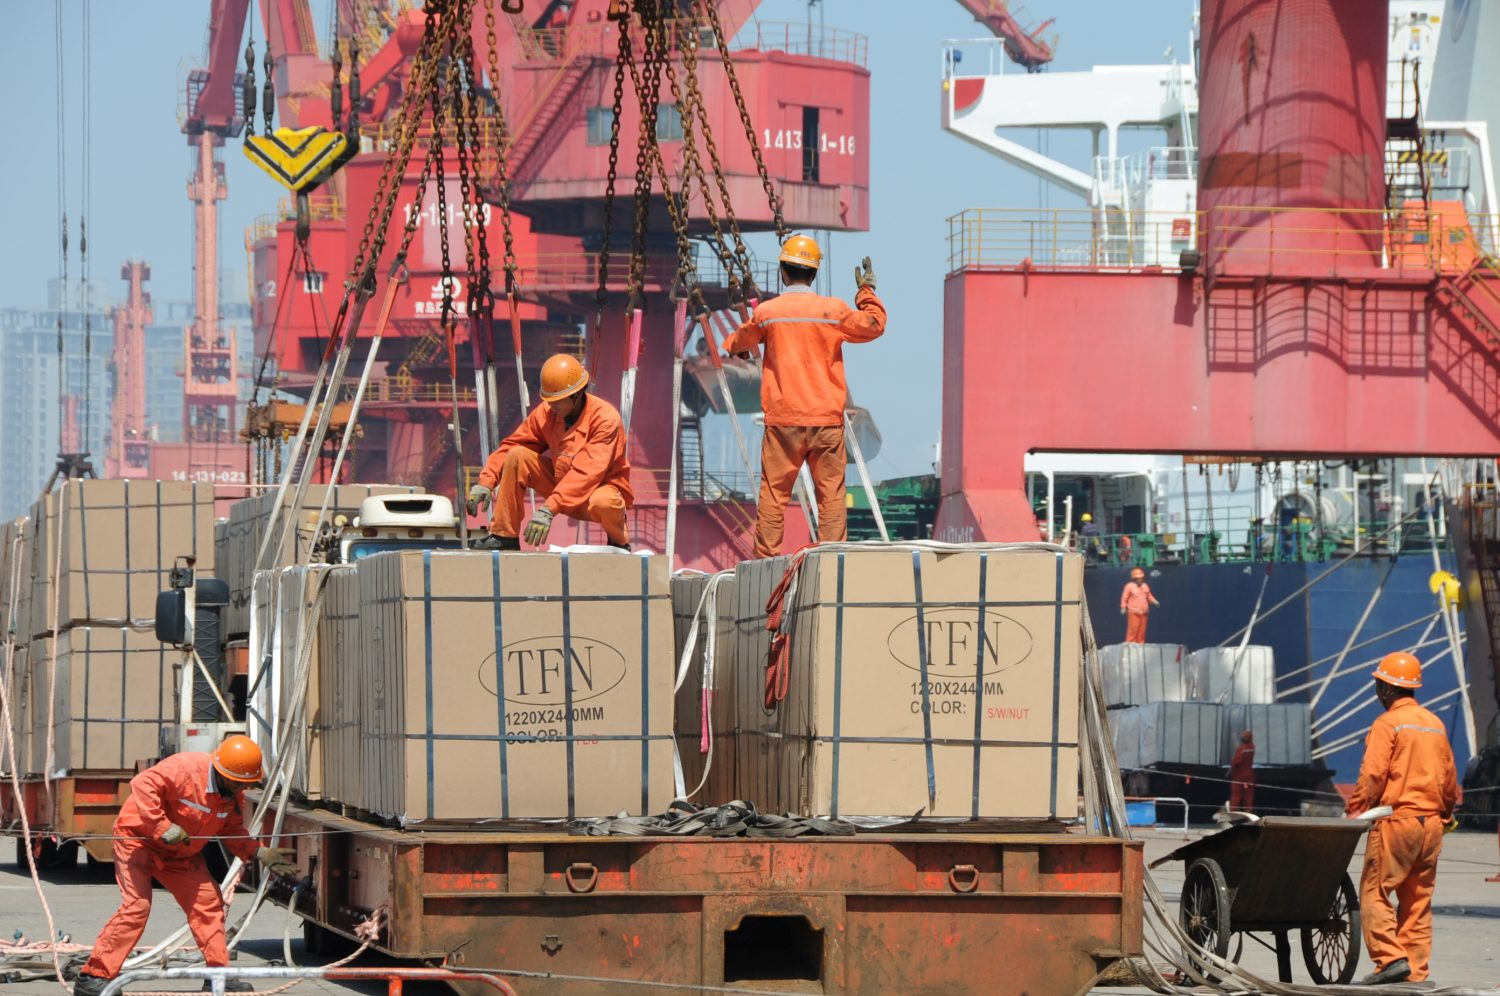 Workers load goods for export onto a crane at a port in Lianyungang, Jiangsu province, China June 7, 2019. Picture taken June 7, 2019. REUTERS/Stringer